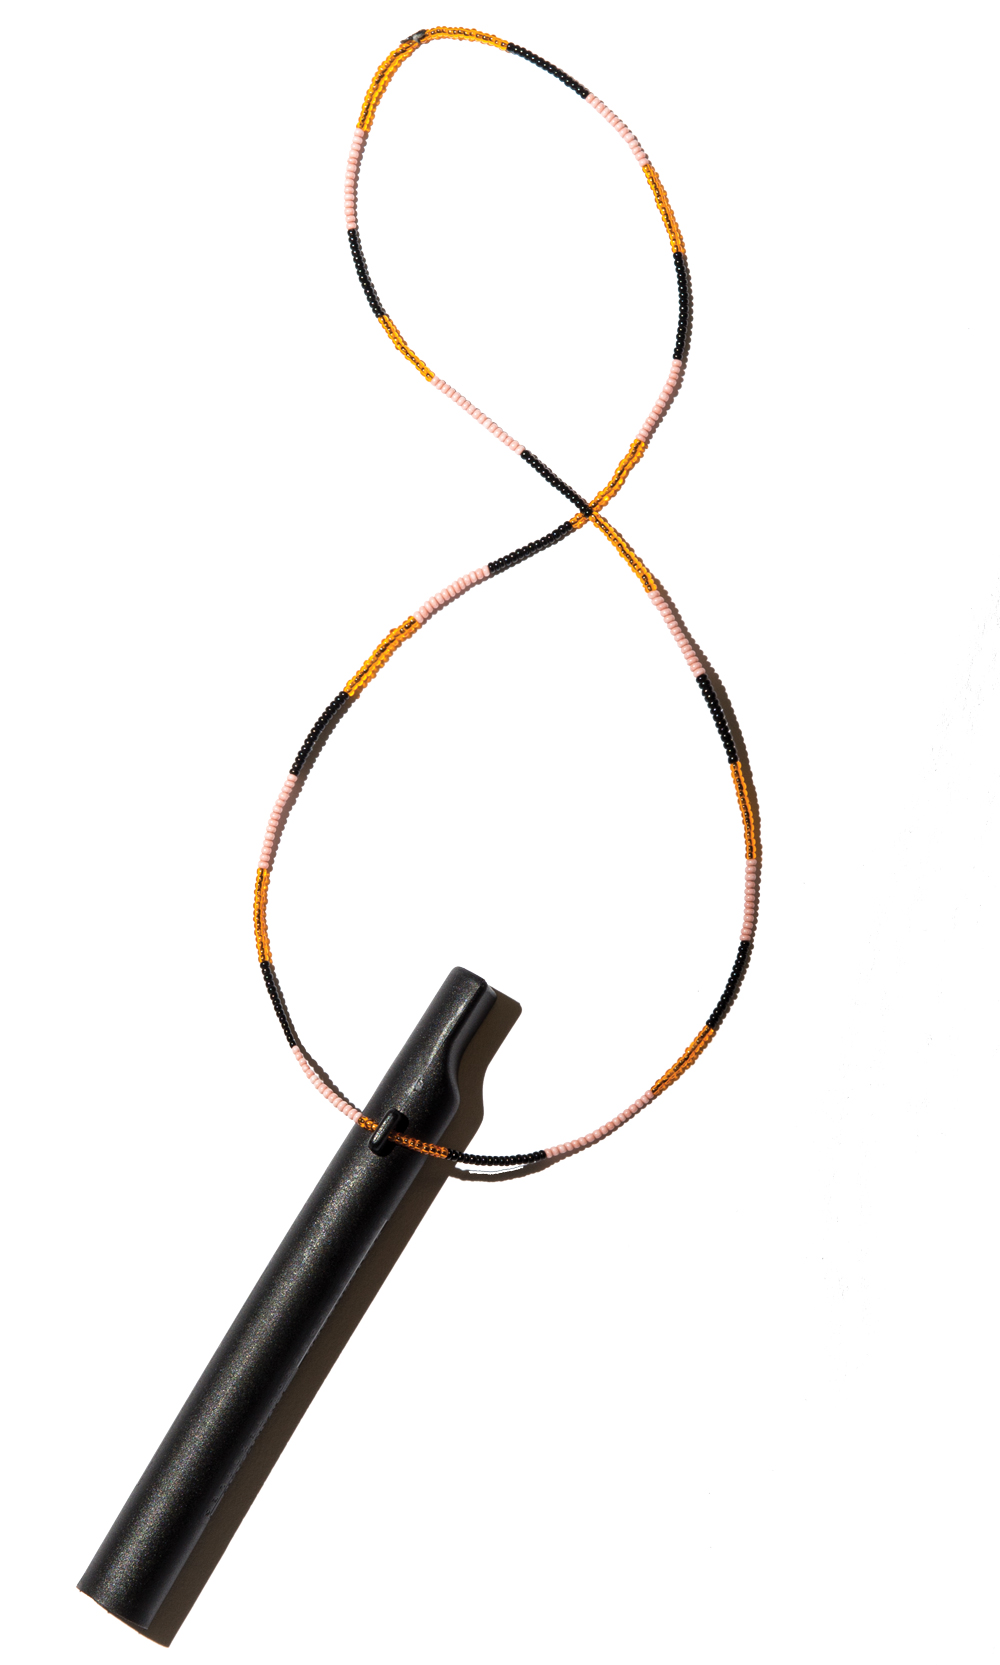 Guinea worm pipe filter